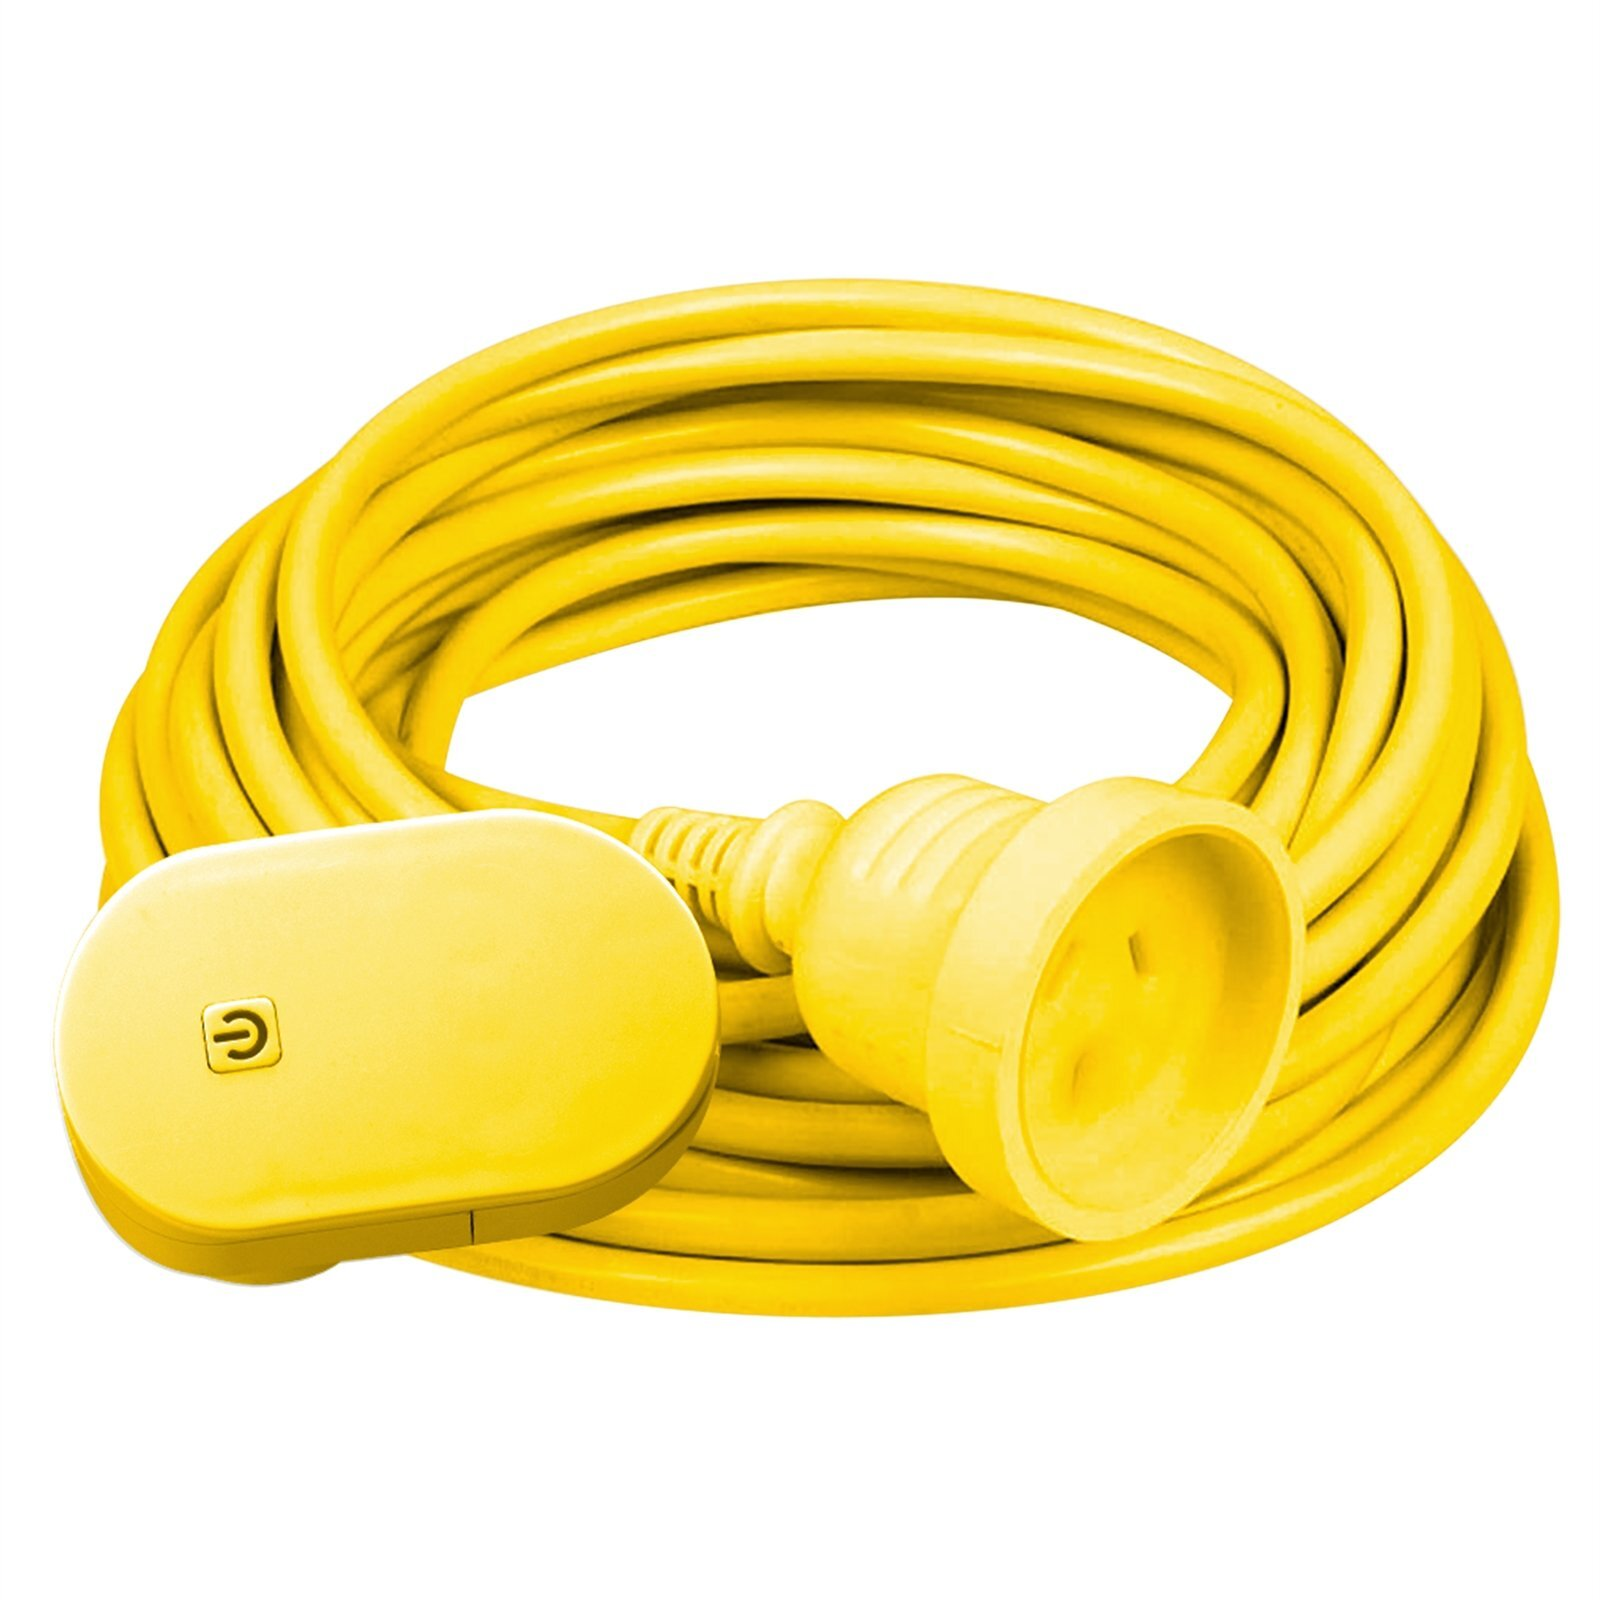 Arlec 20m Grid Connect Smart Extra Heavy Duty Extension Lead